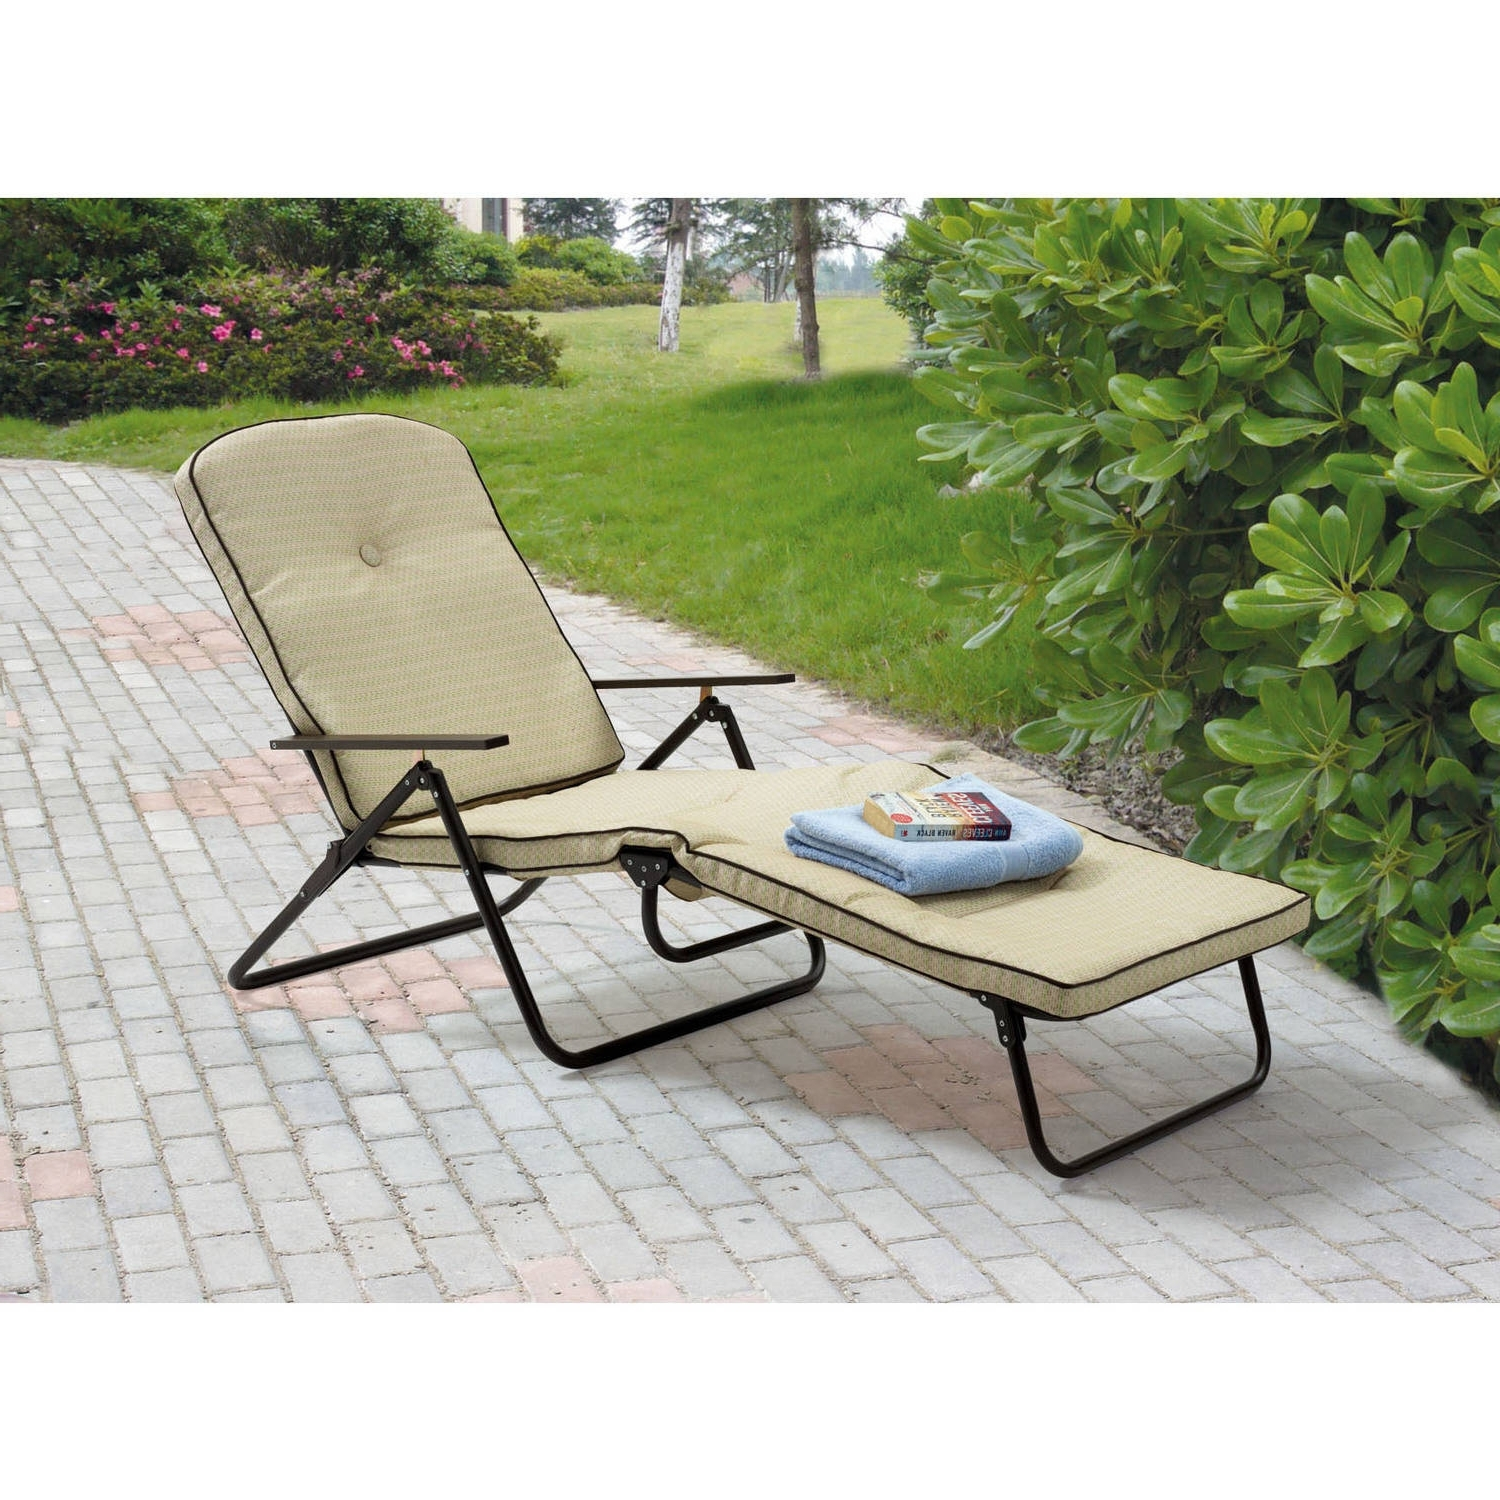 Most Recently Released Folding Chaise Lounge Chairs Intended For Mainstays Sand Dune Outdoor Padded Folding Chaise Lounge, Tan (View 8 of 15)